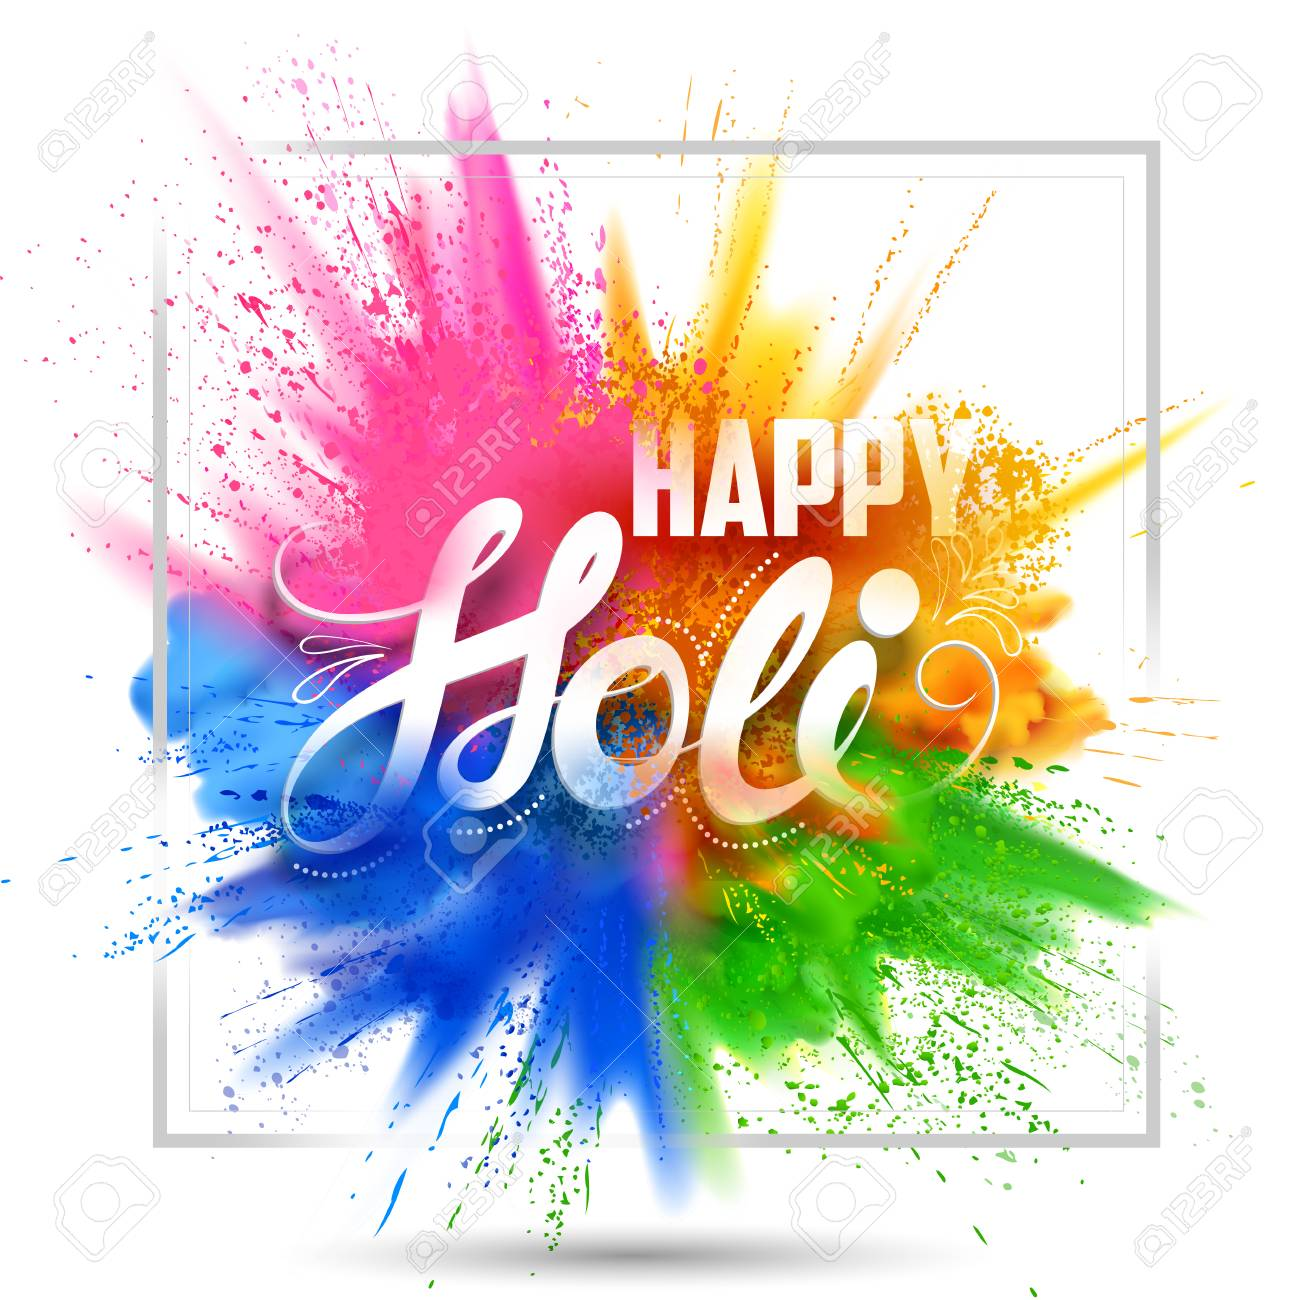 Happy Holi background for color festival of India celebration greetings - 96063263